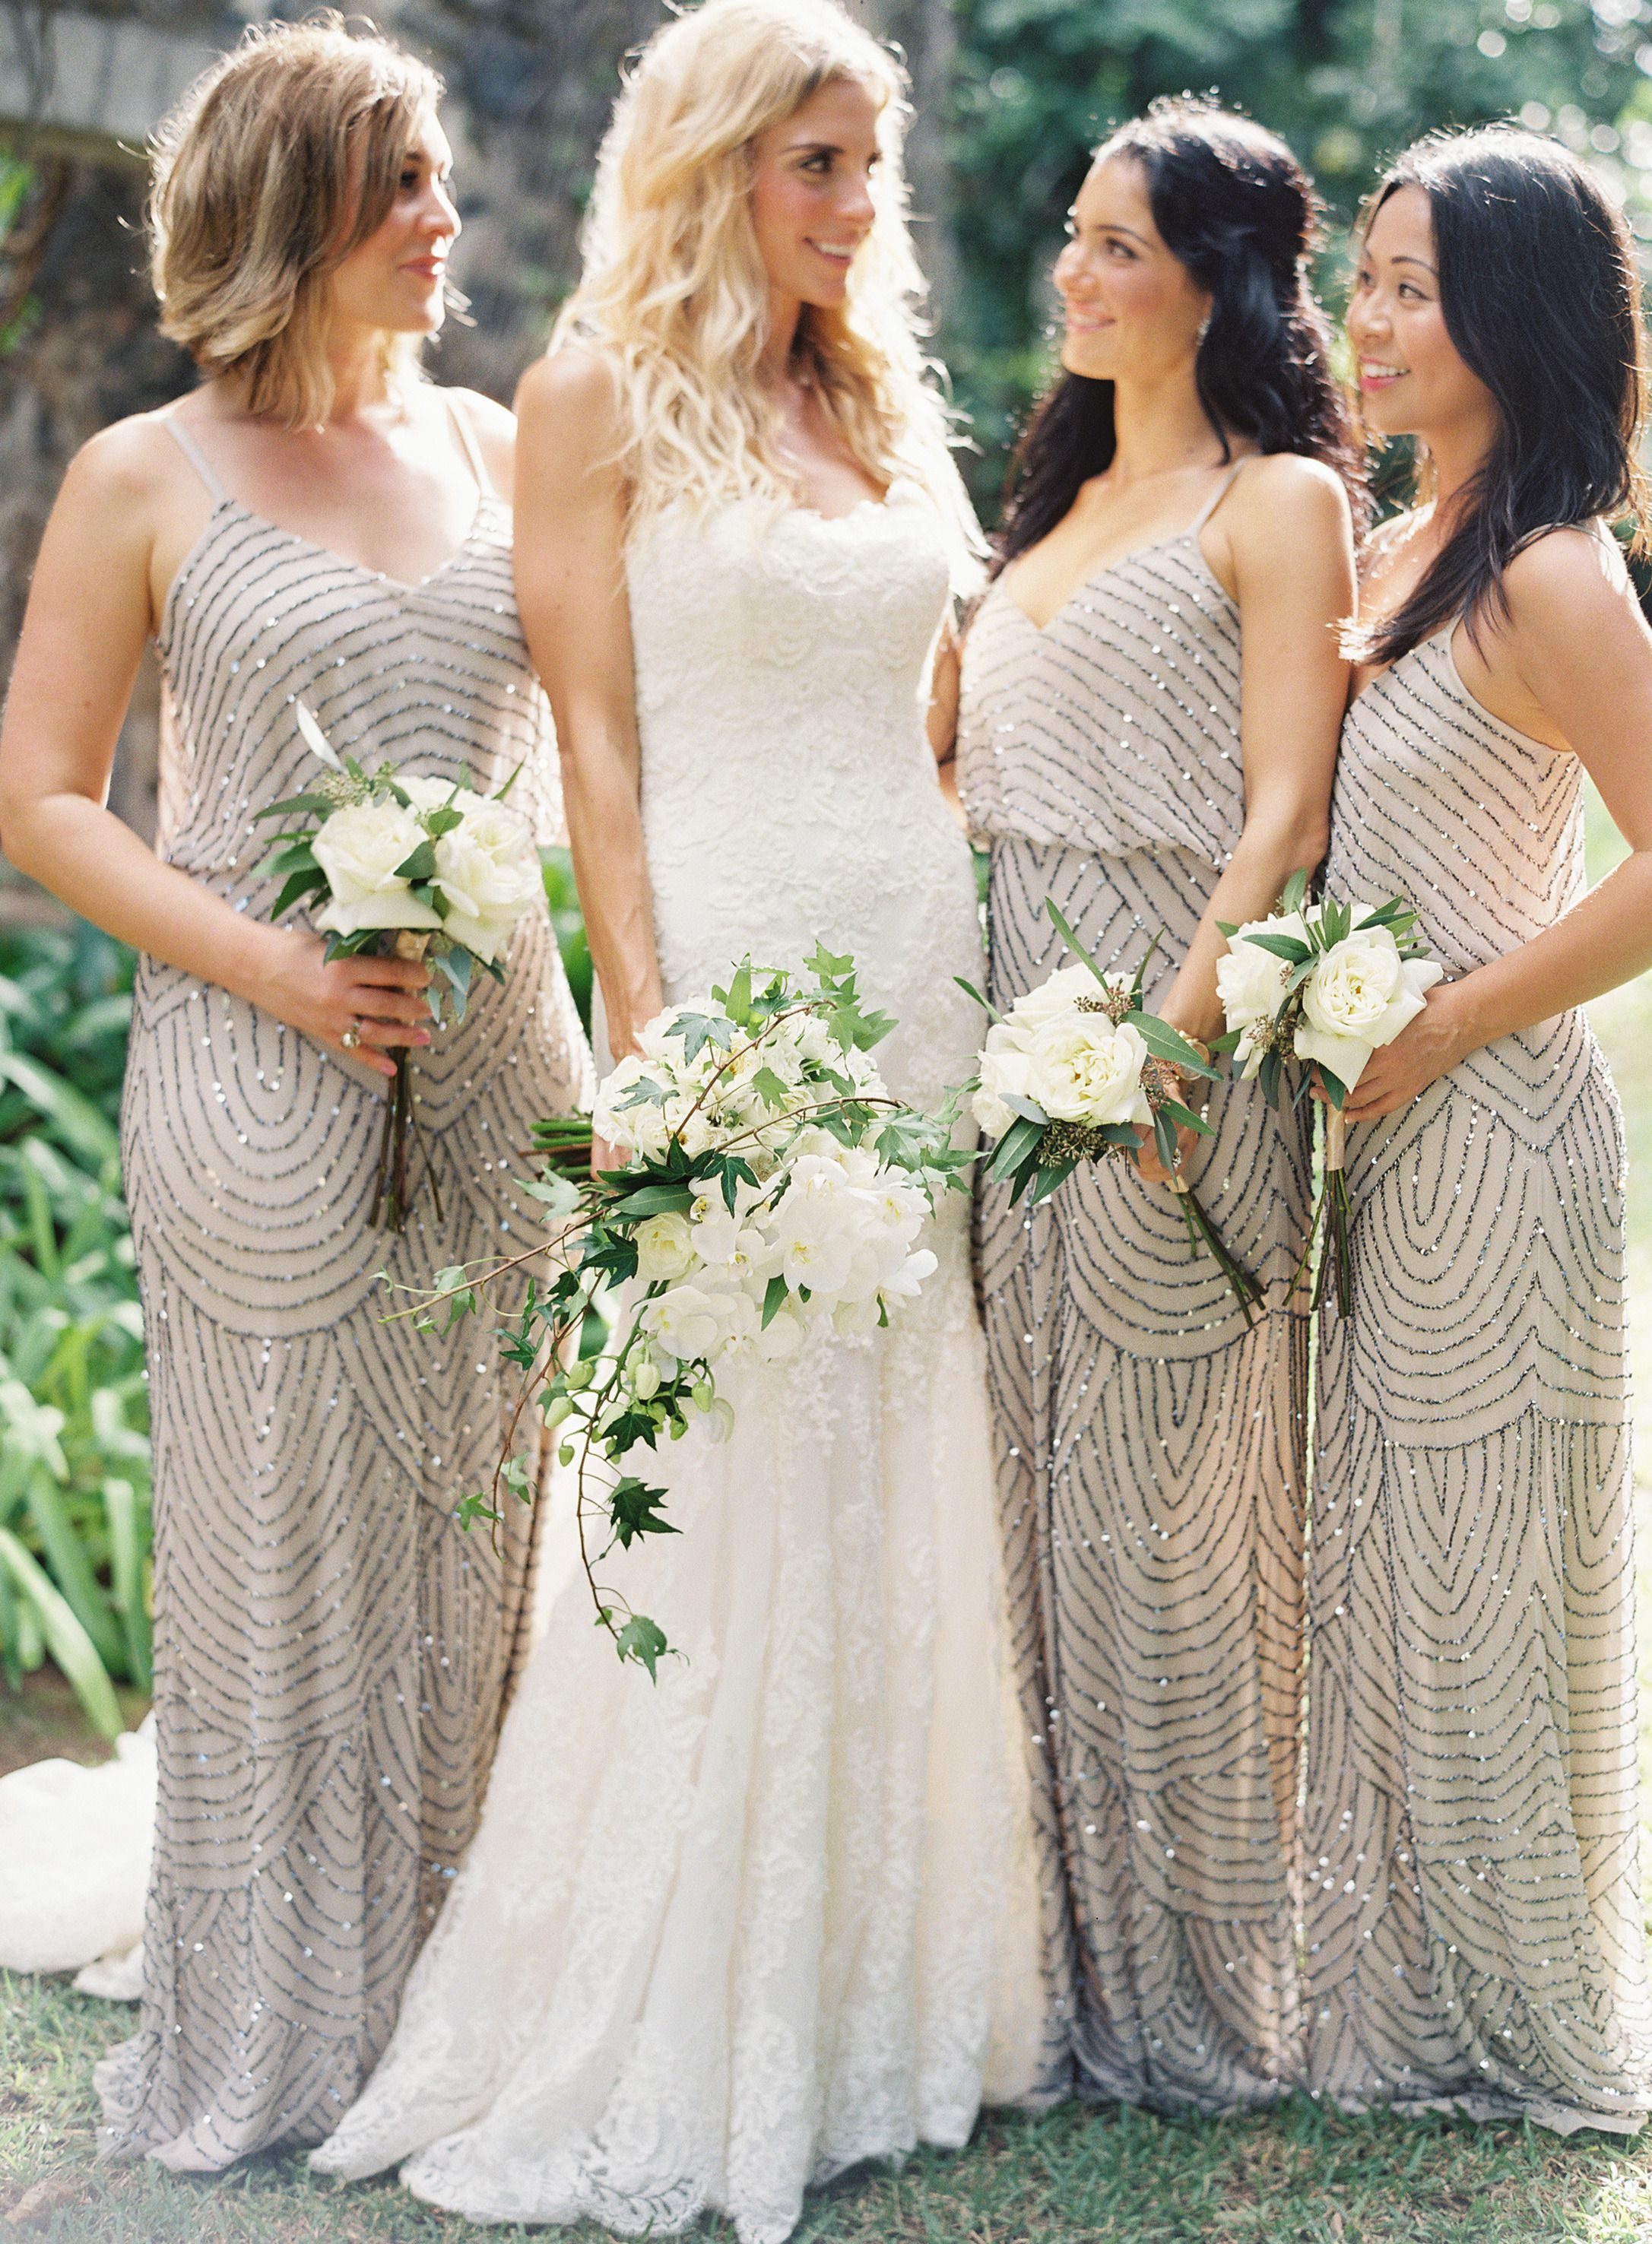 Gold Sequin Bridesmaid Dresses By Adrianna Papell Bridesmaids